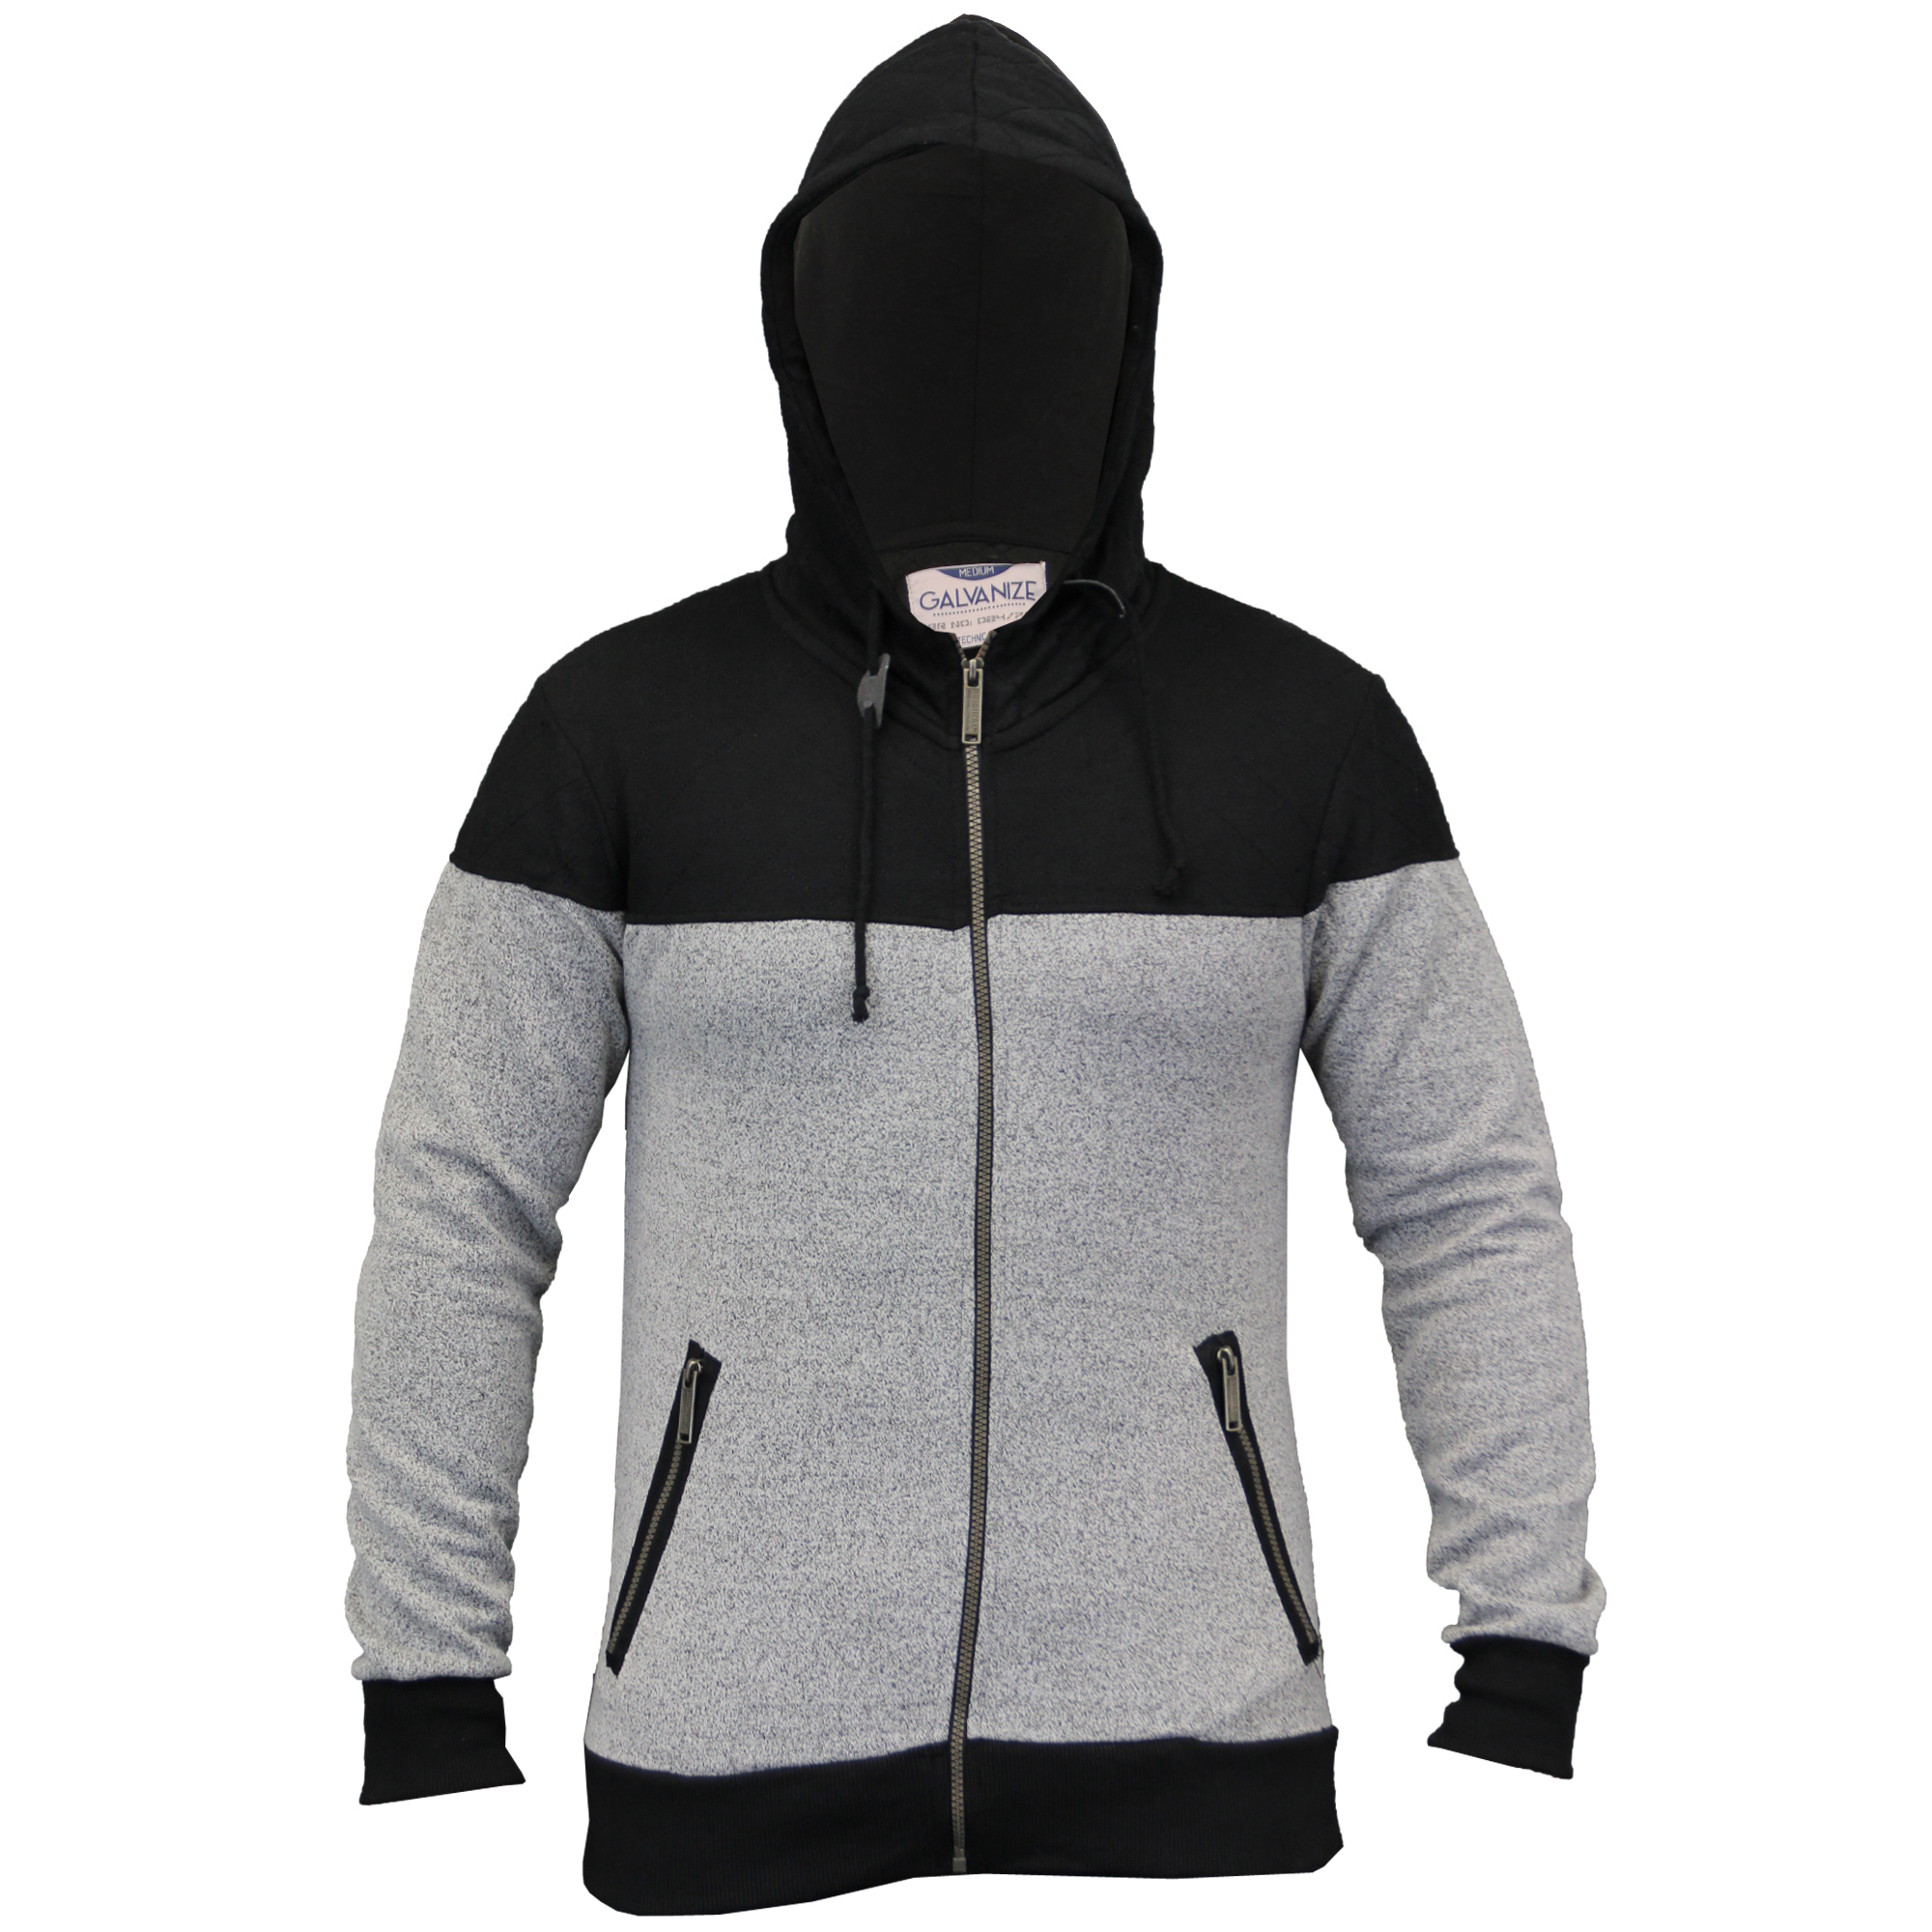 Mens-Diamond-Quilted-Hooded-Top-Fleece-Lined-Sweatshirt-By-Galvanize thumbnail 7